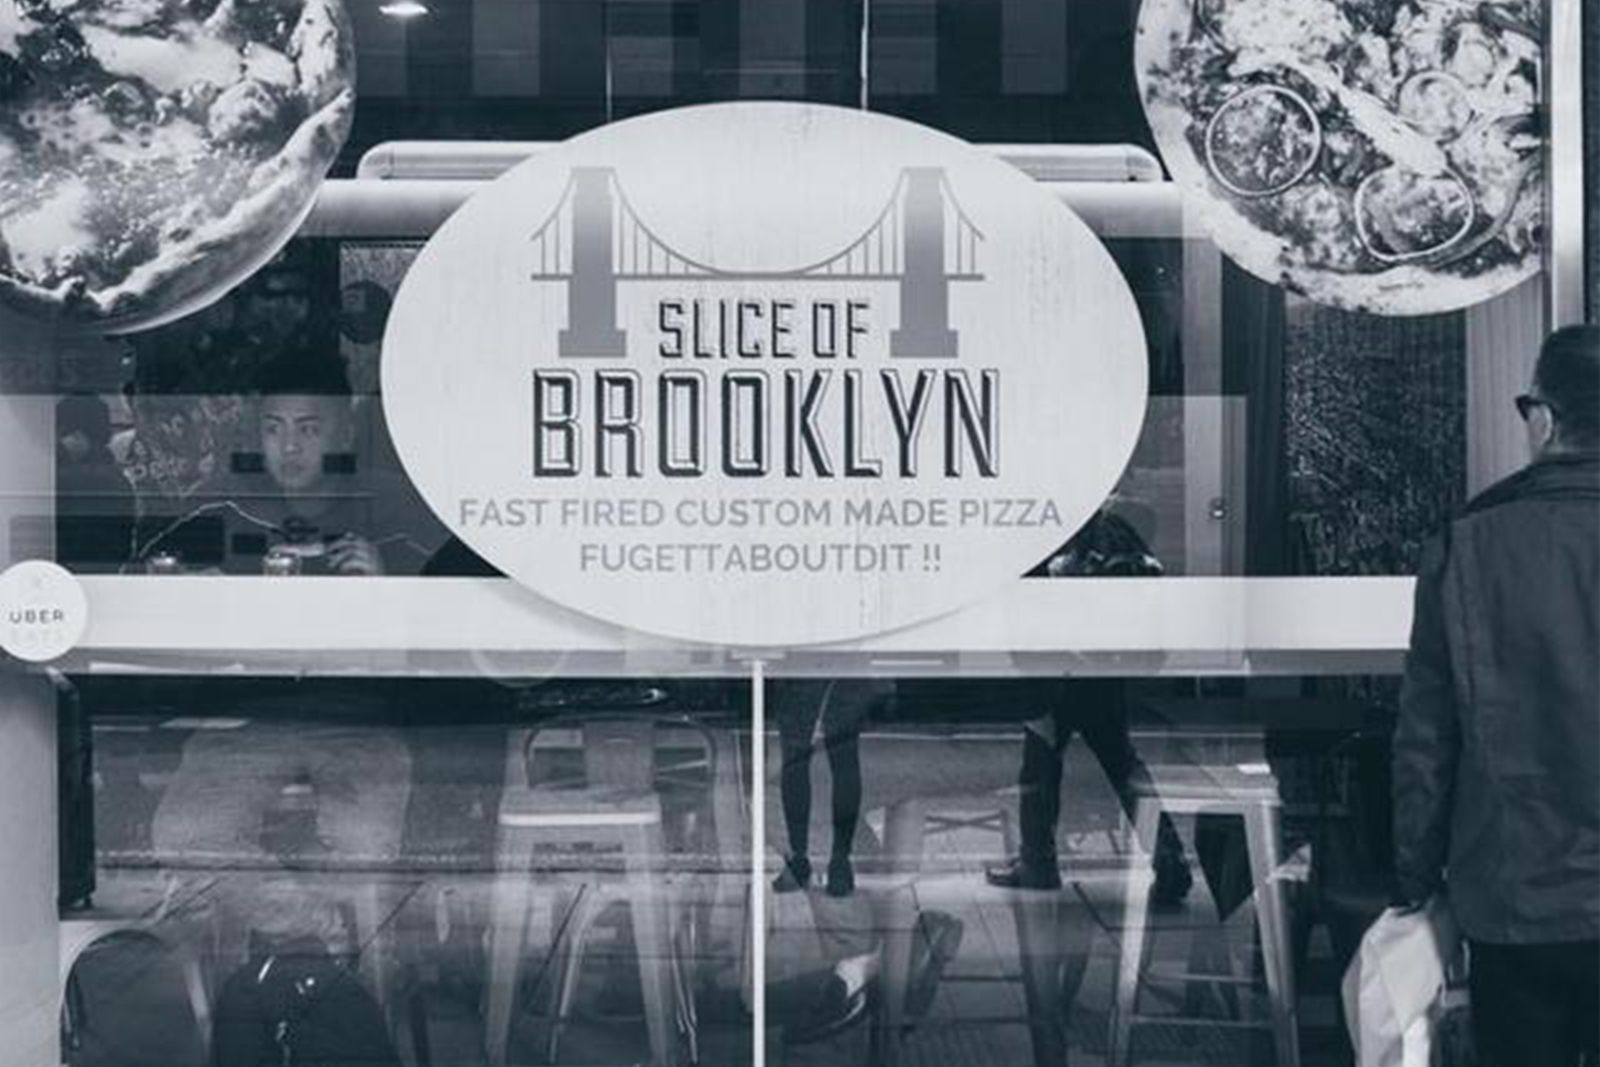 Slice of Brooklyn crowdfunds franchise model | Inside Franchise Business